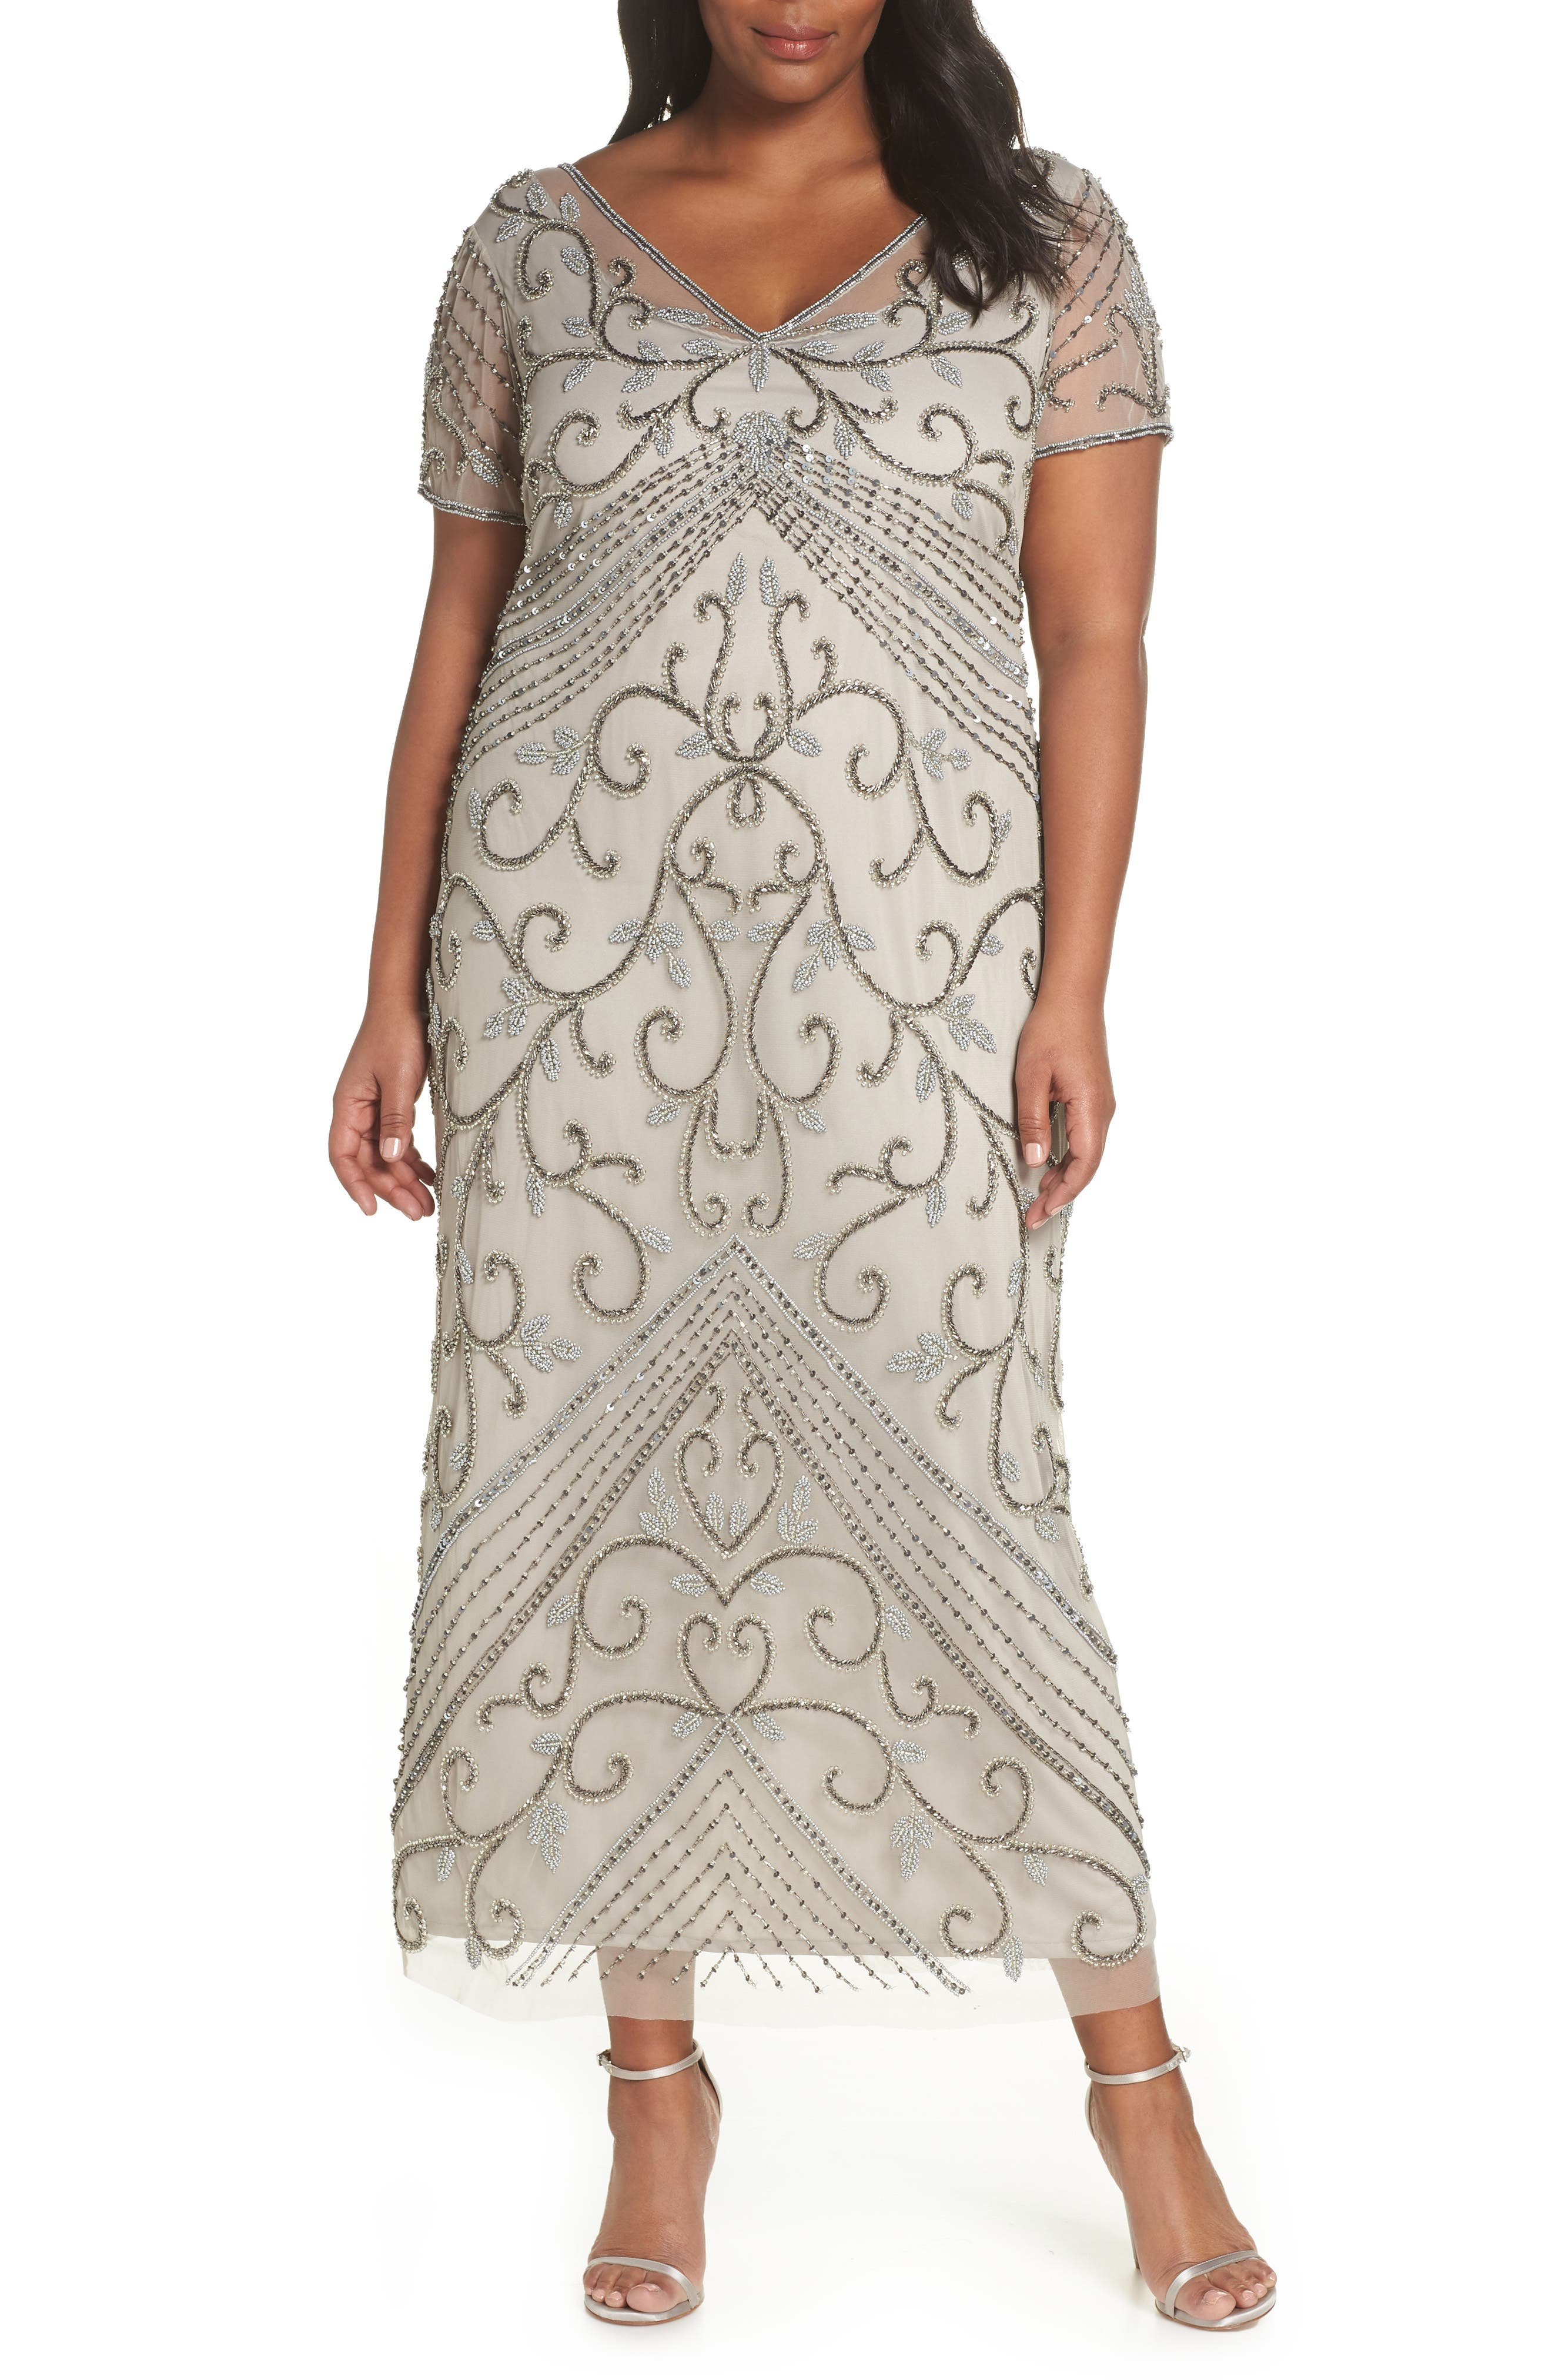 Vintage Inspired Wedding Dress | Vintage Style Wedding Dresses Plus Size Womens Pisarro Nights Beaded Mesh Gown Size 24W - Metallic $248.00 AT vintagedancer.com